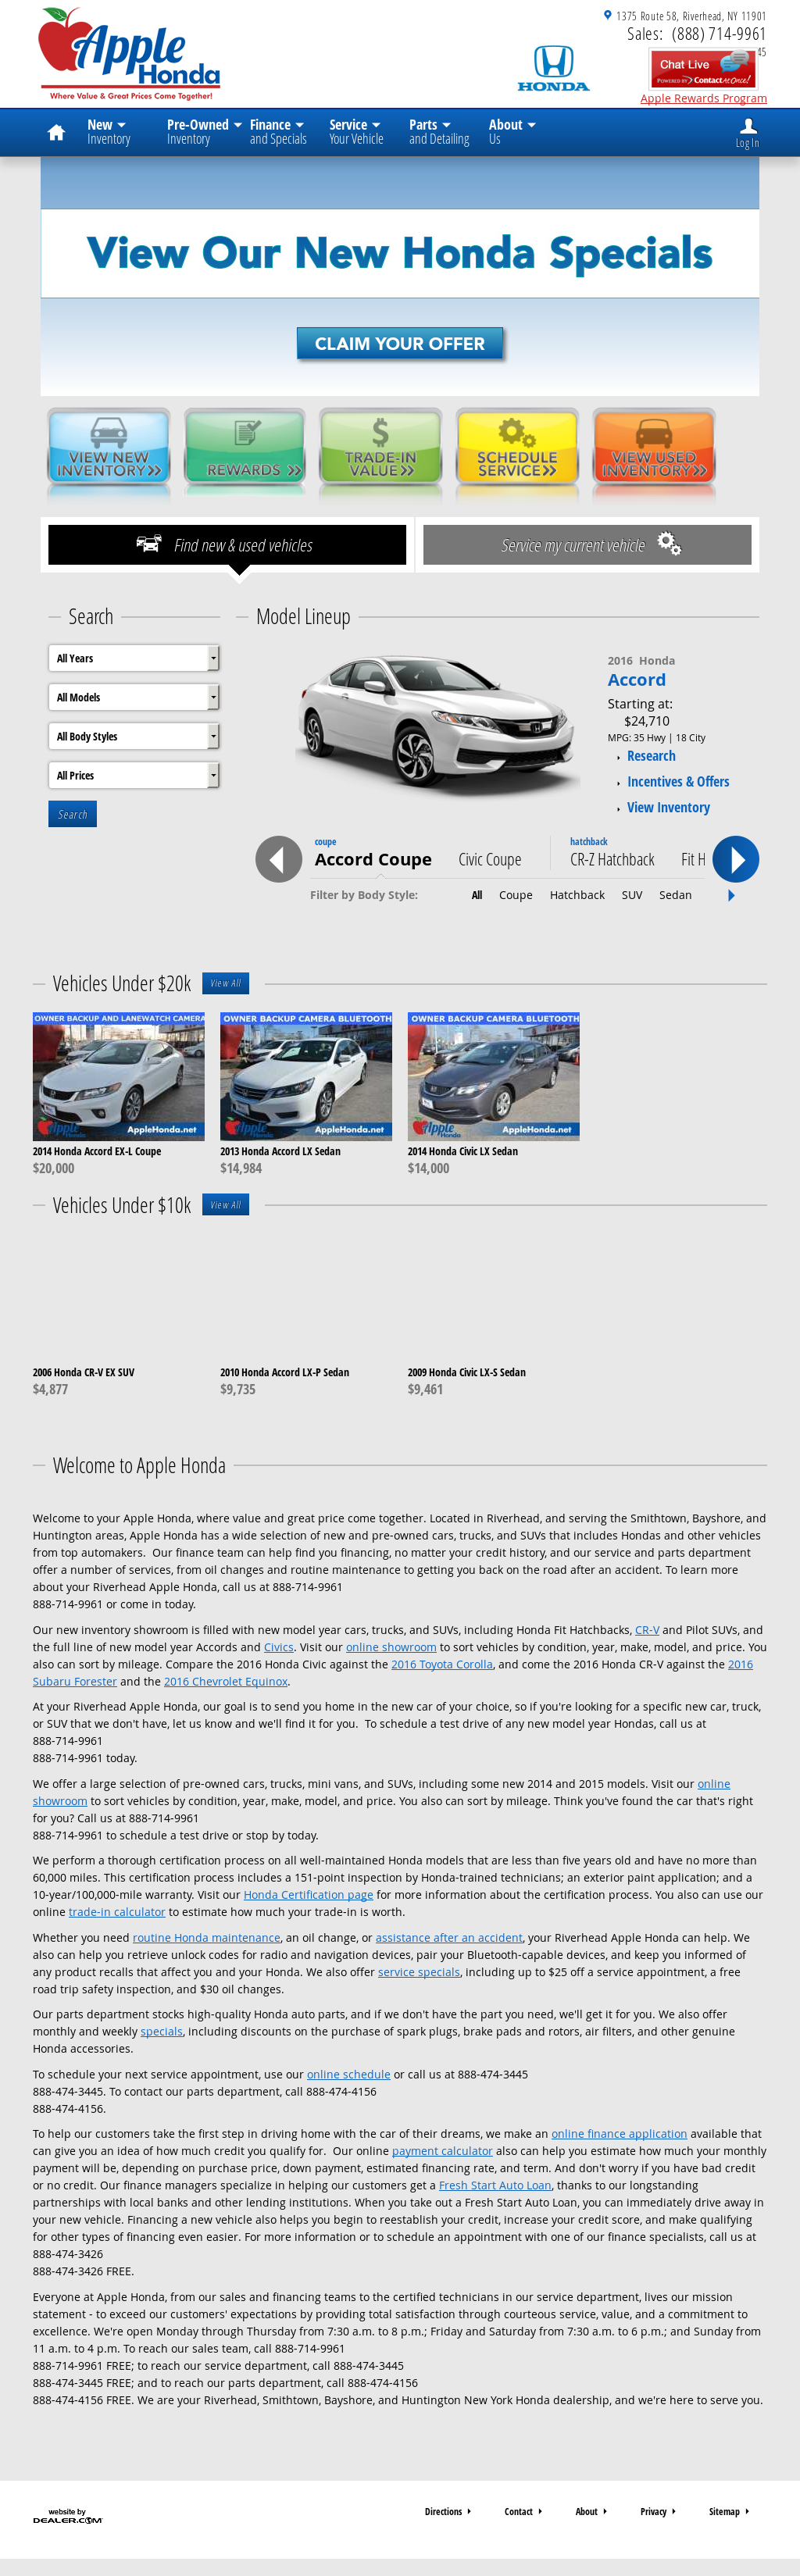 Apple Honda Website History